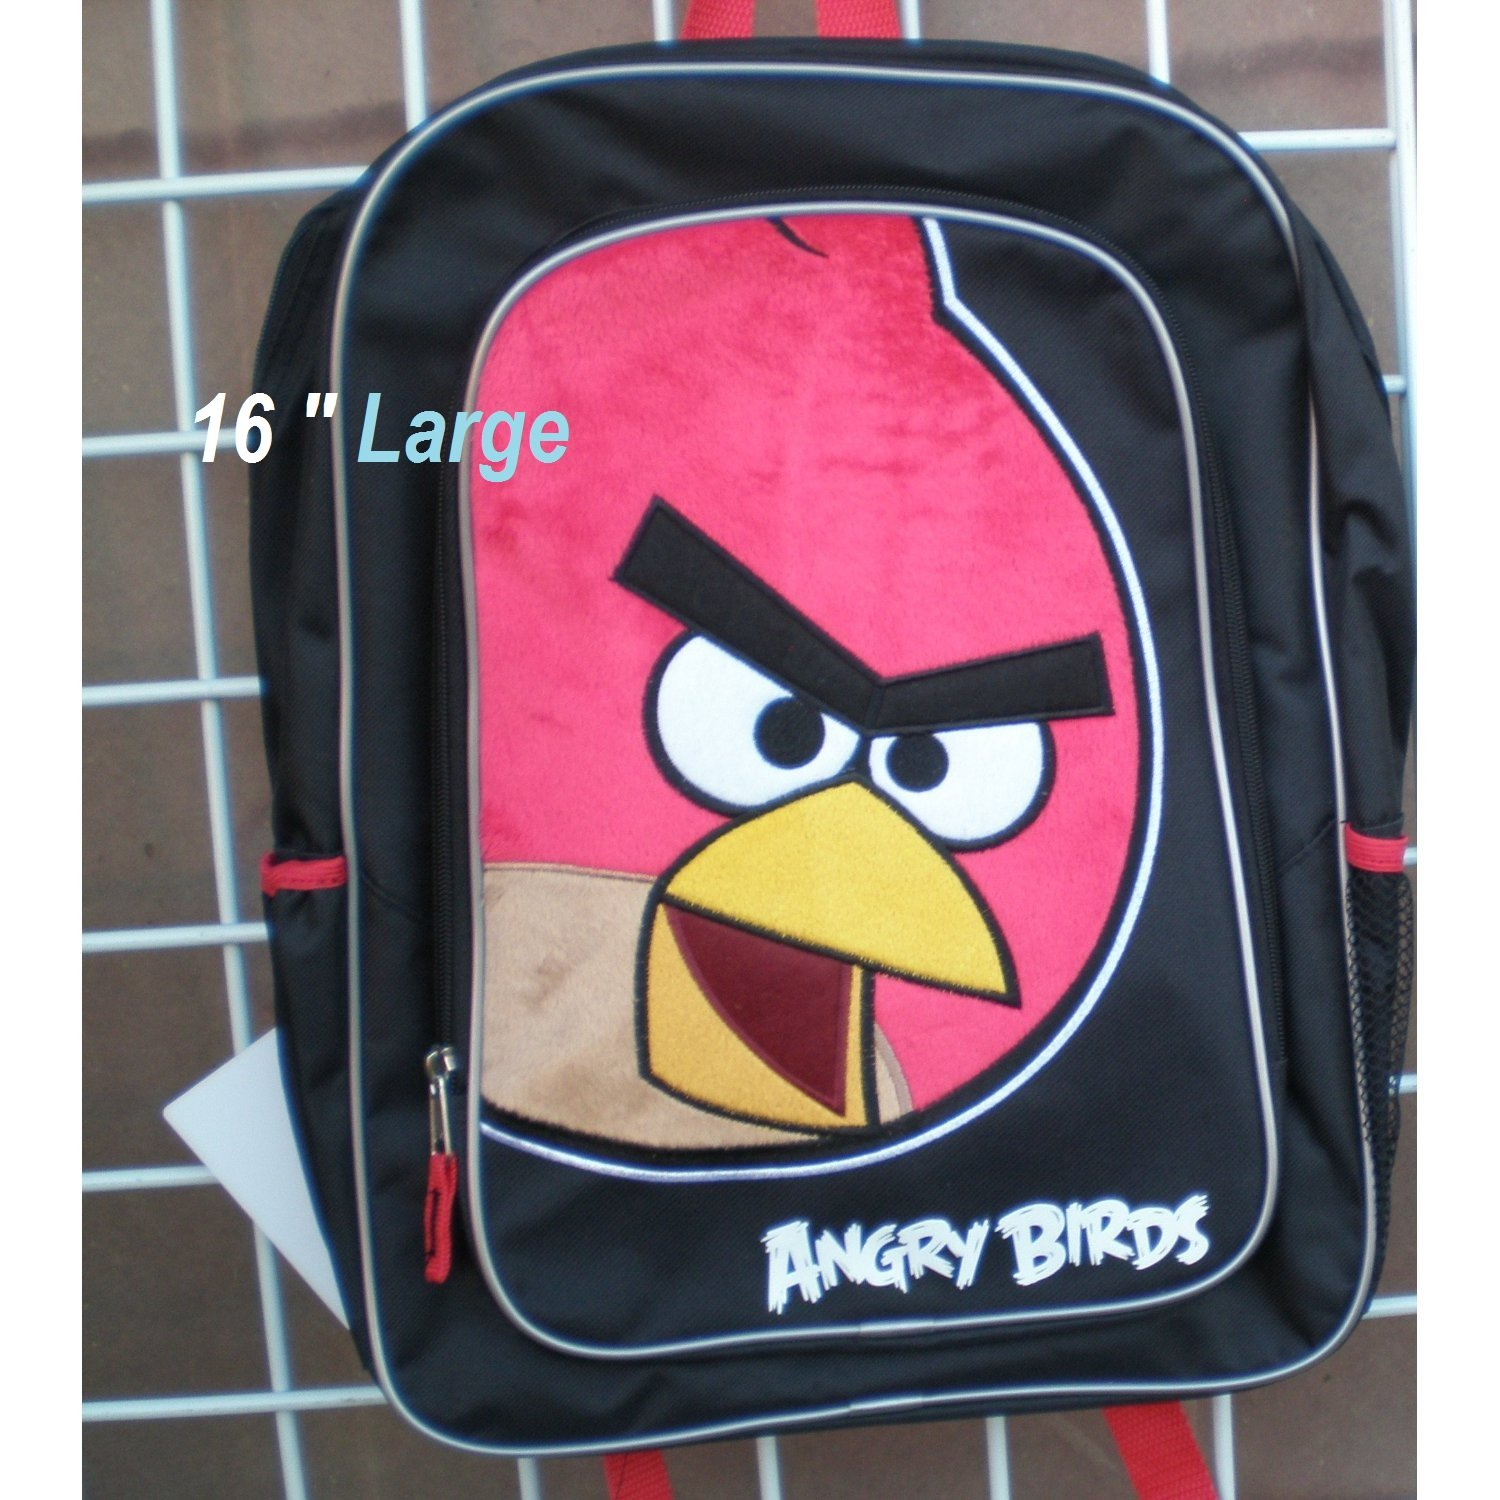 bb28fd2c37ce Angry Birds BackPack - Angry Birds School Bag  Amazon.in  Bags ...